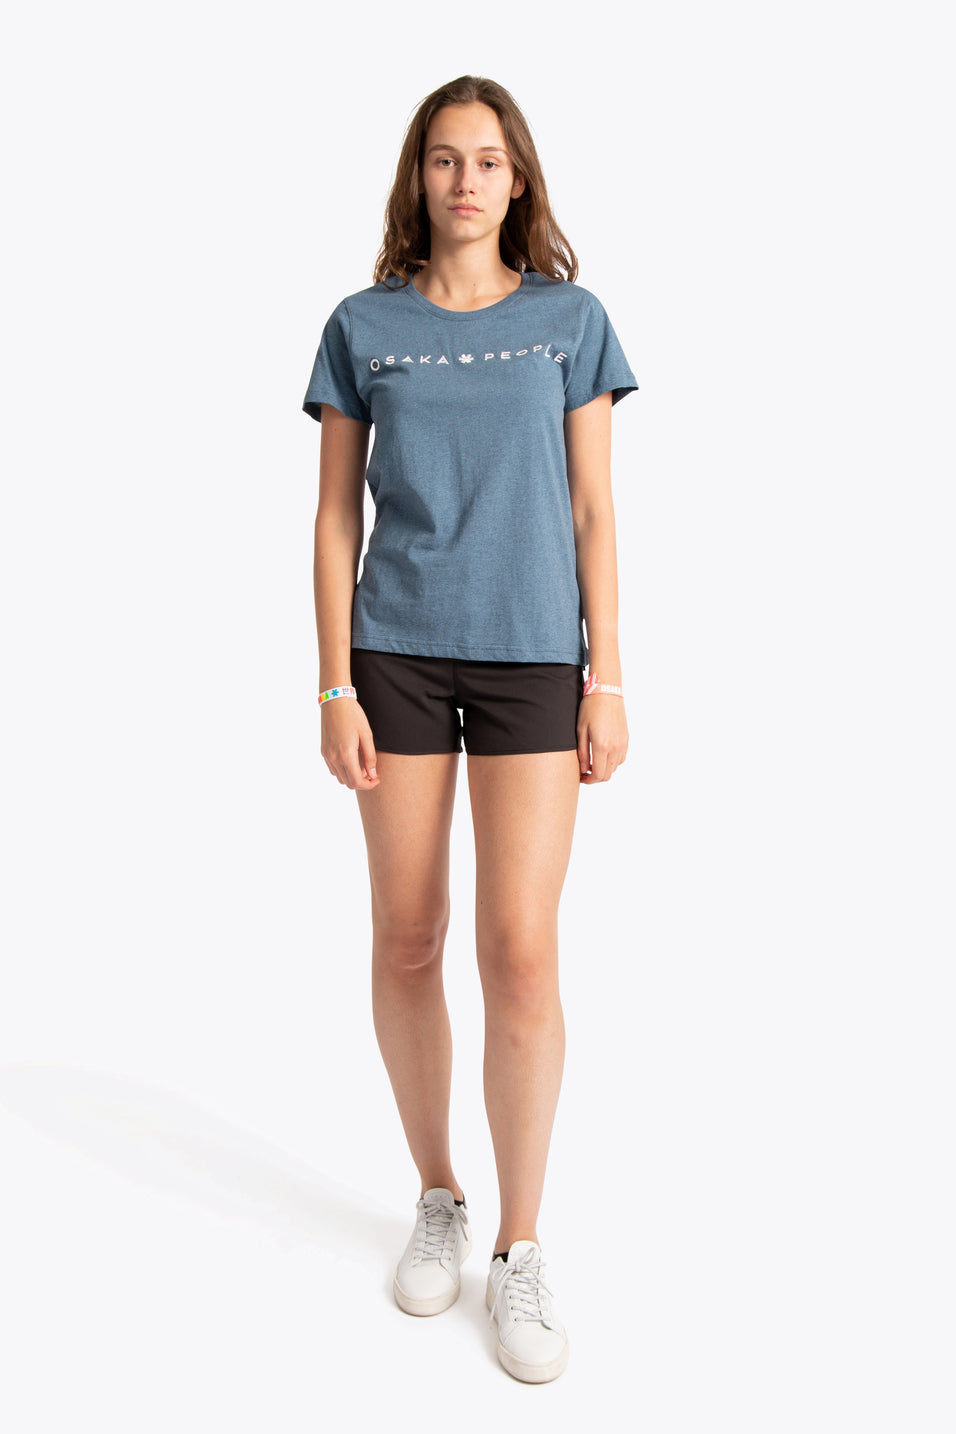 Women Tee Osaka People - Teal